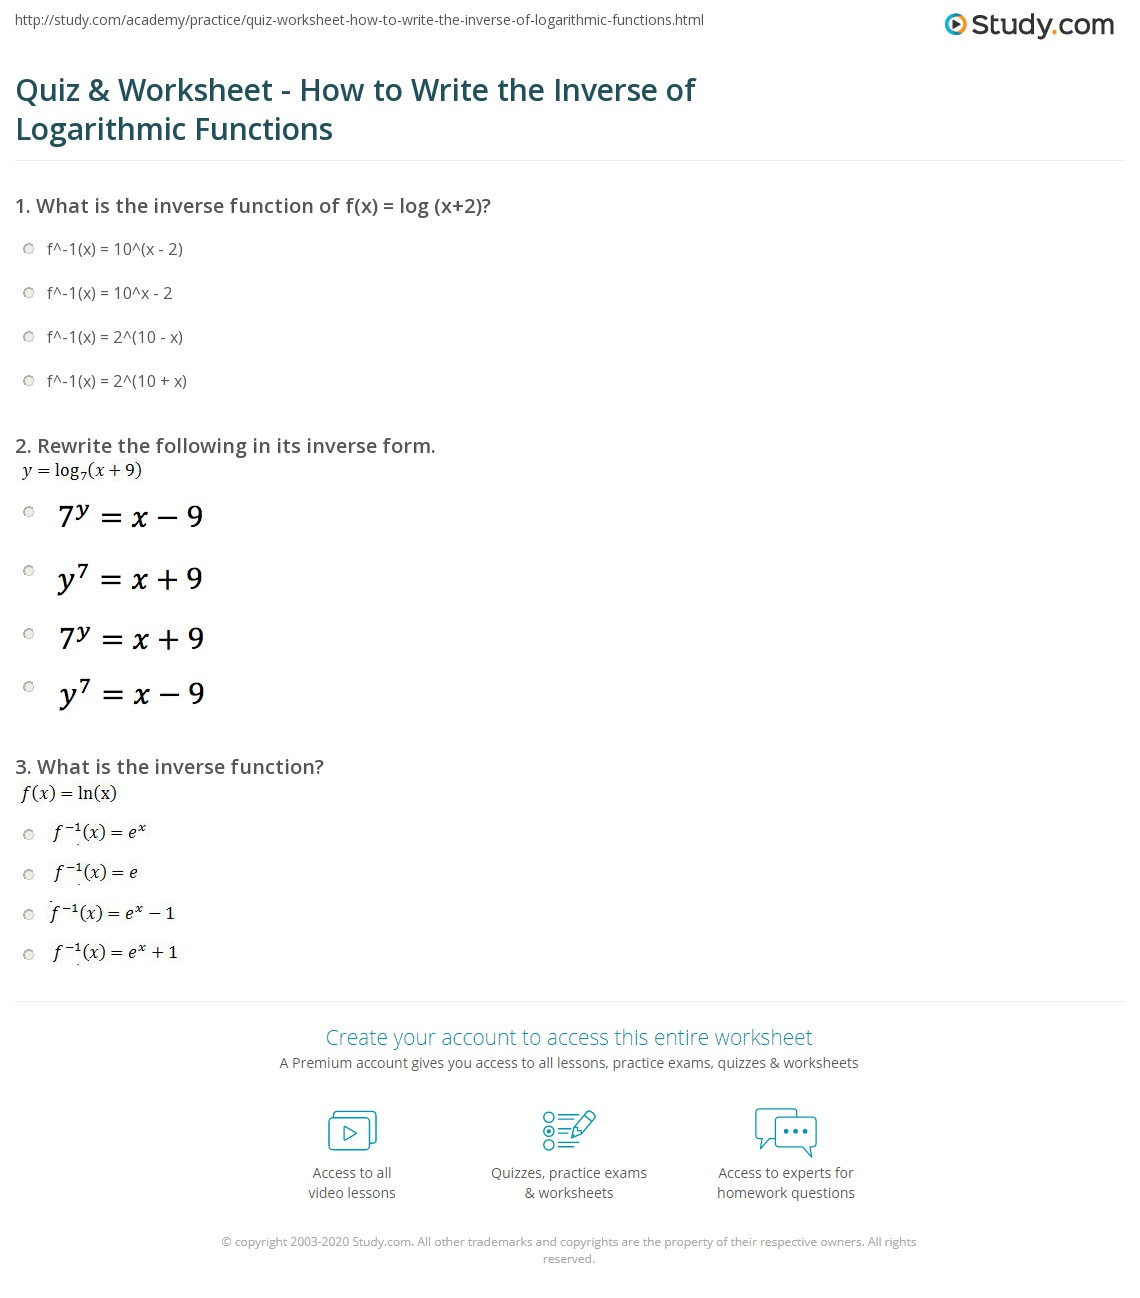 Quiz & Worksheet - How to Write the Inverse of Logarithmic Functions ...